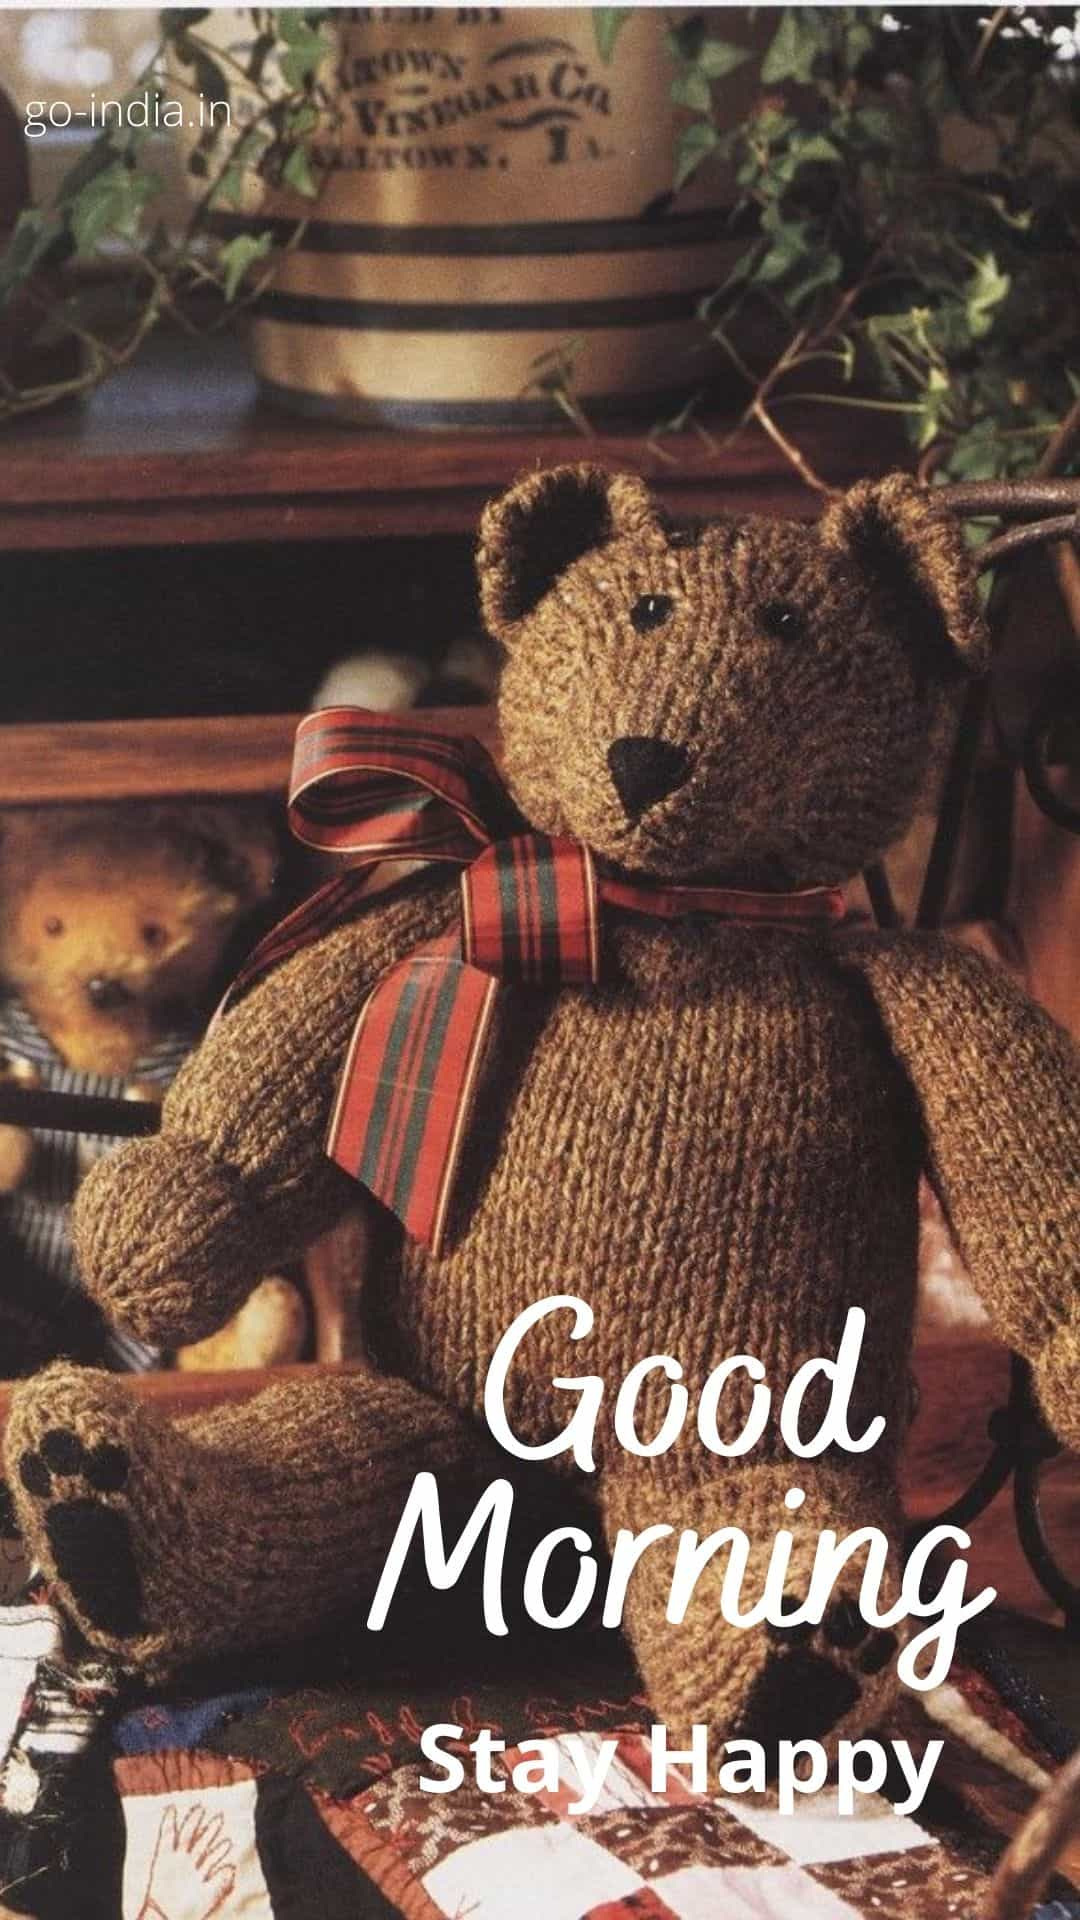 good morning teddy bear images HD download